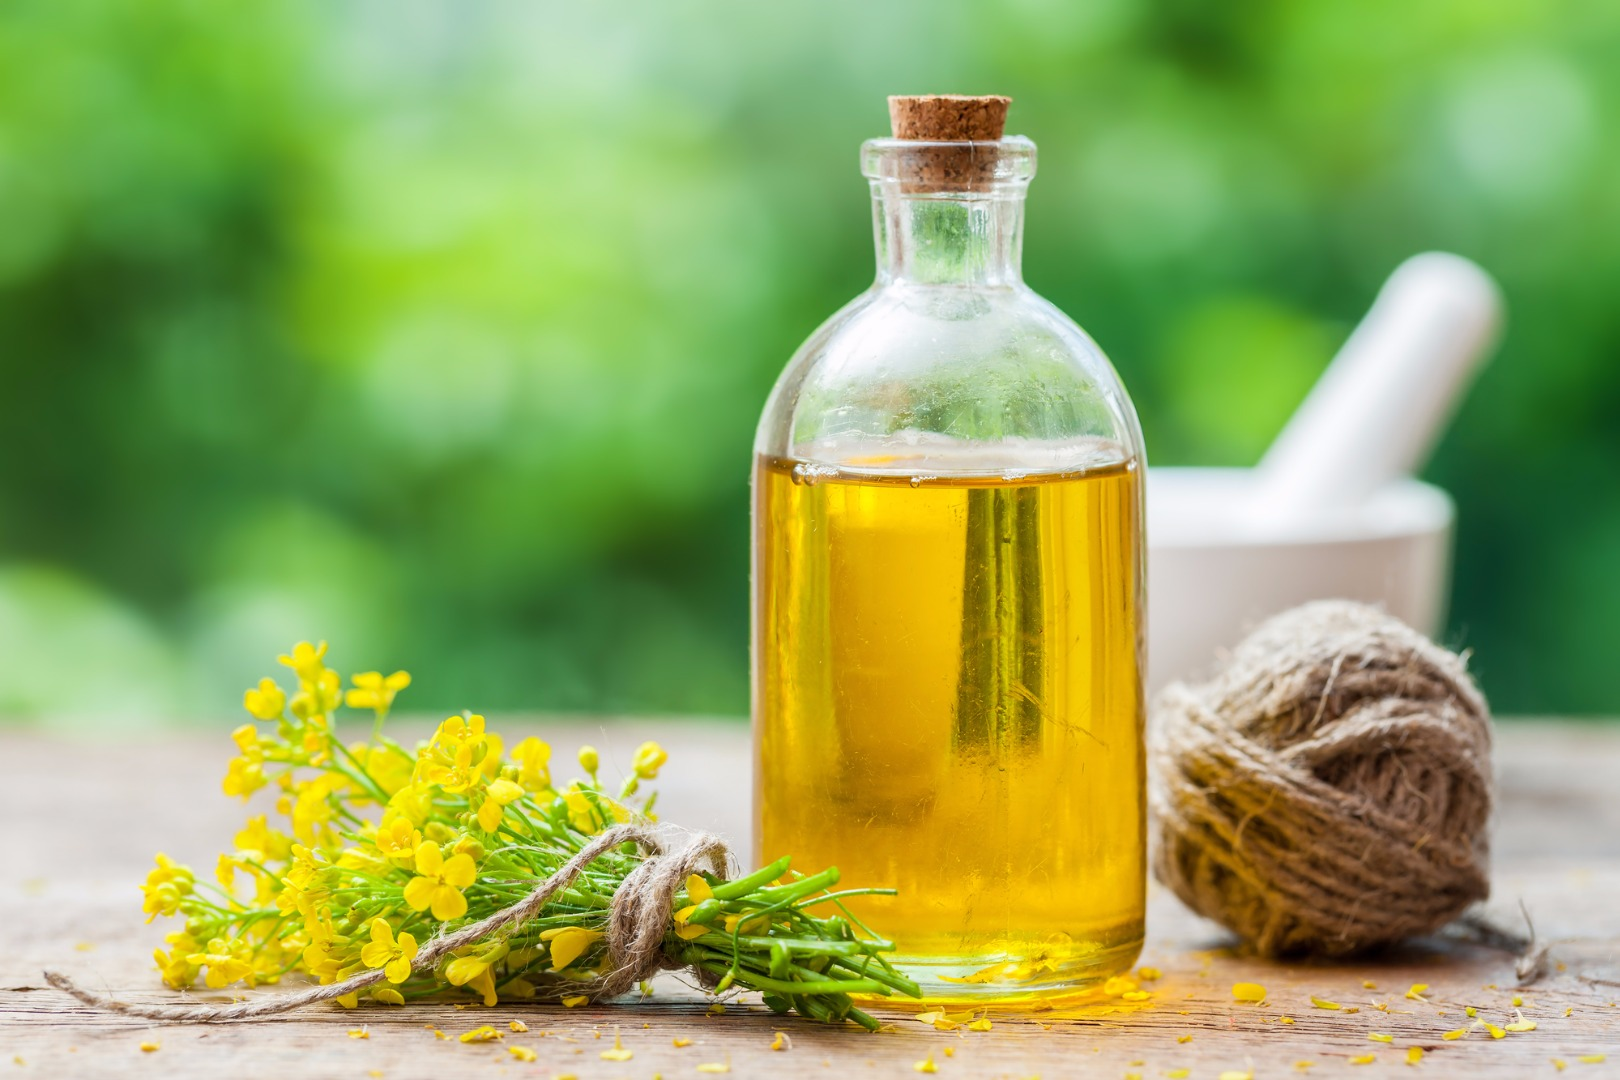 Canola oil linked to Alzheimer's complications in new study